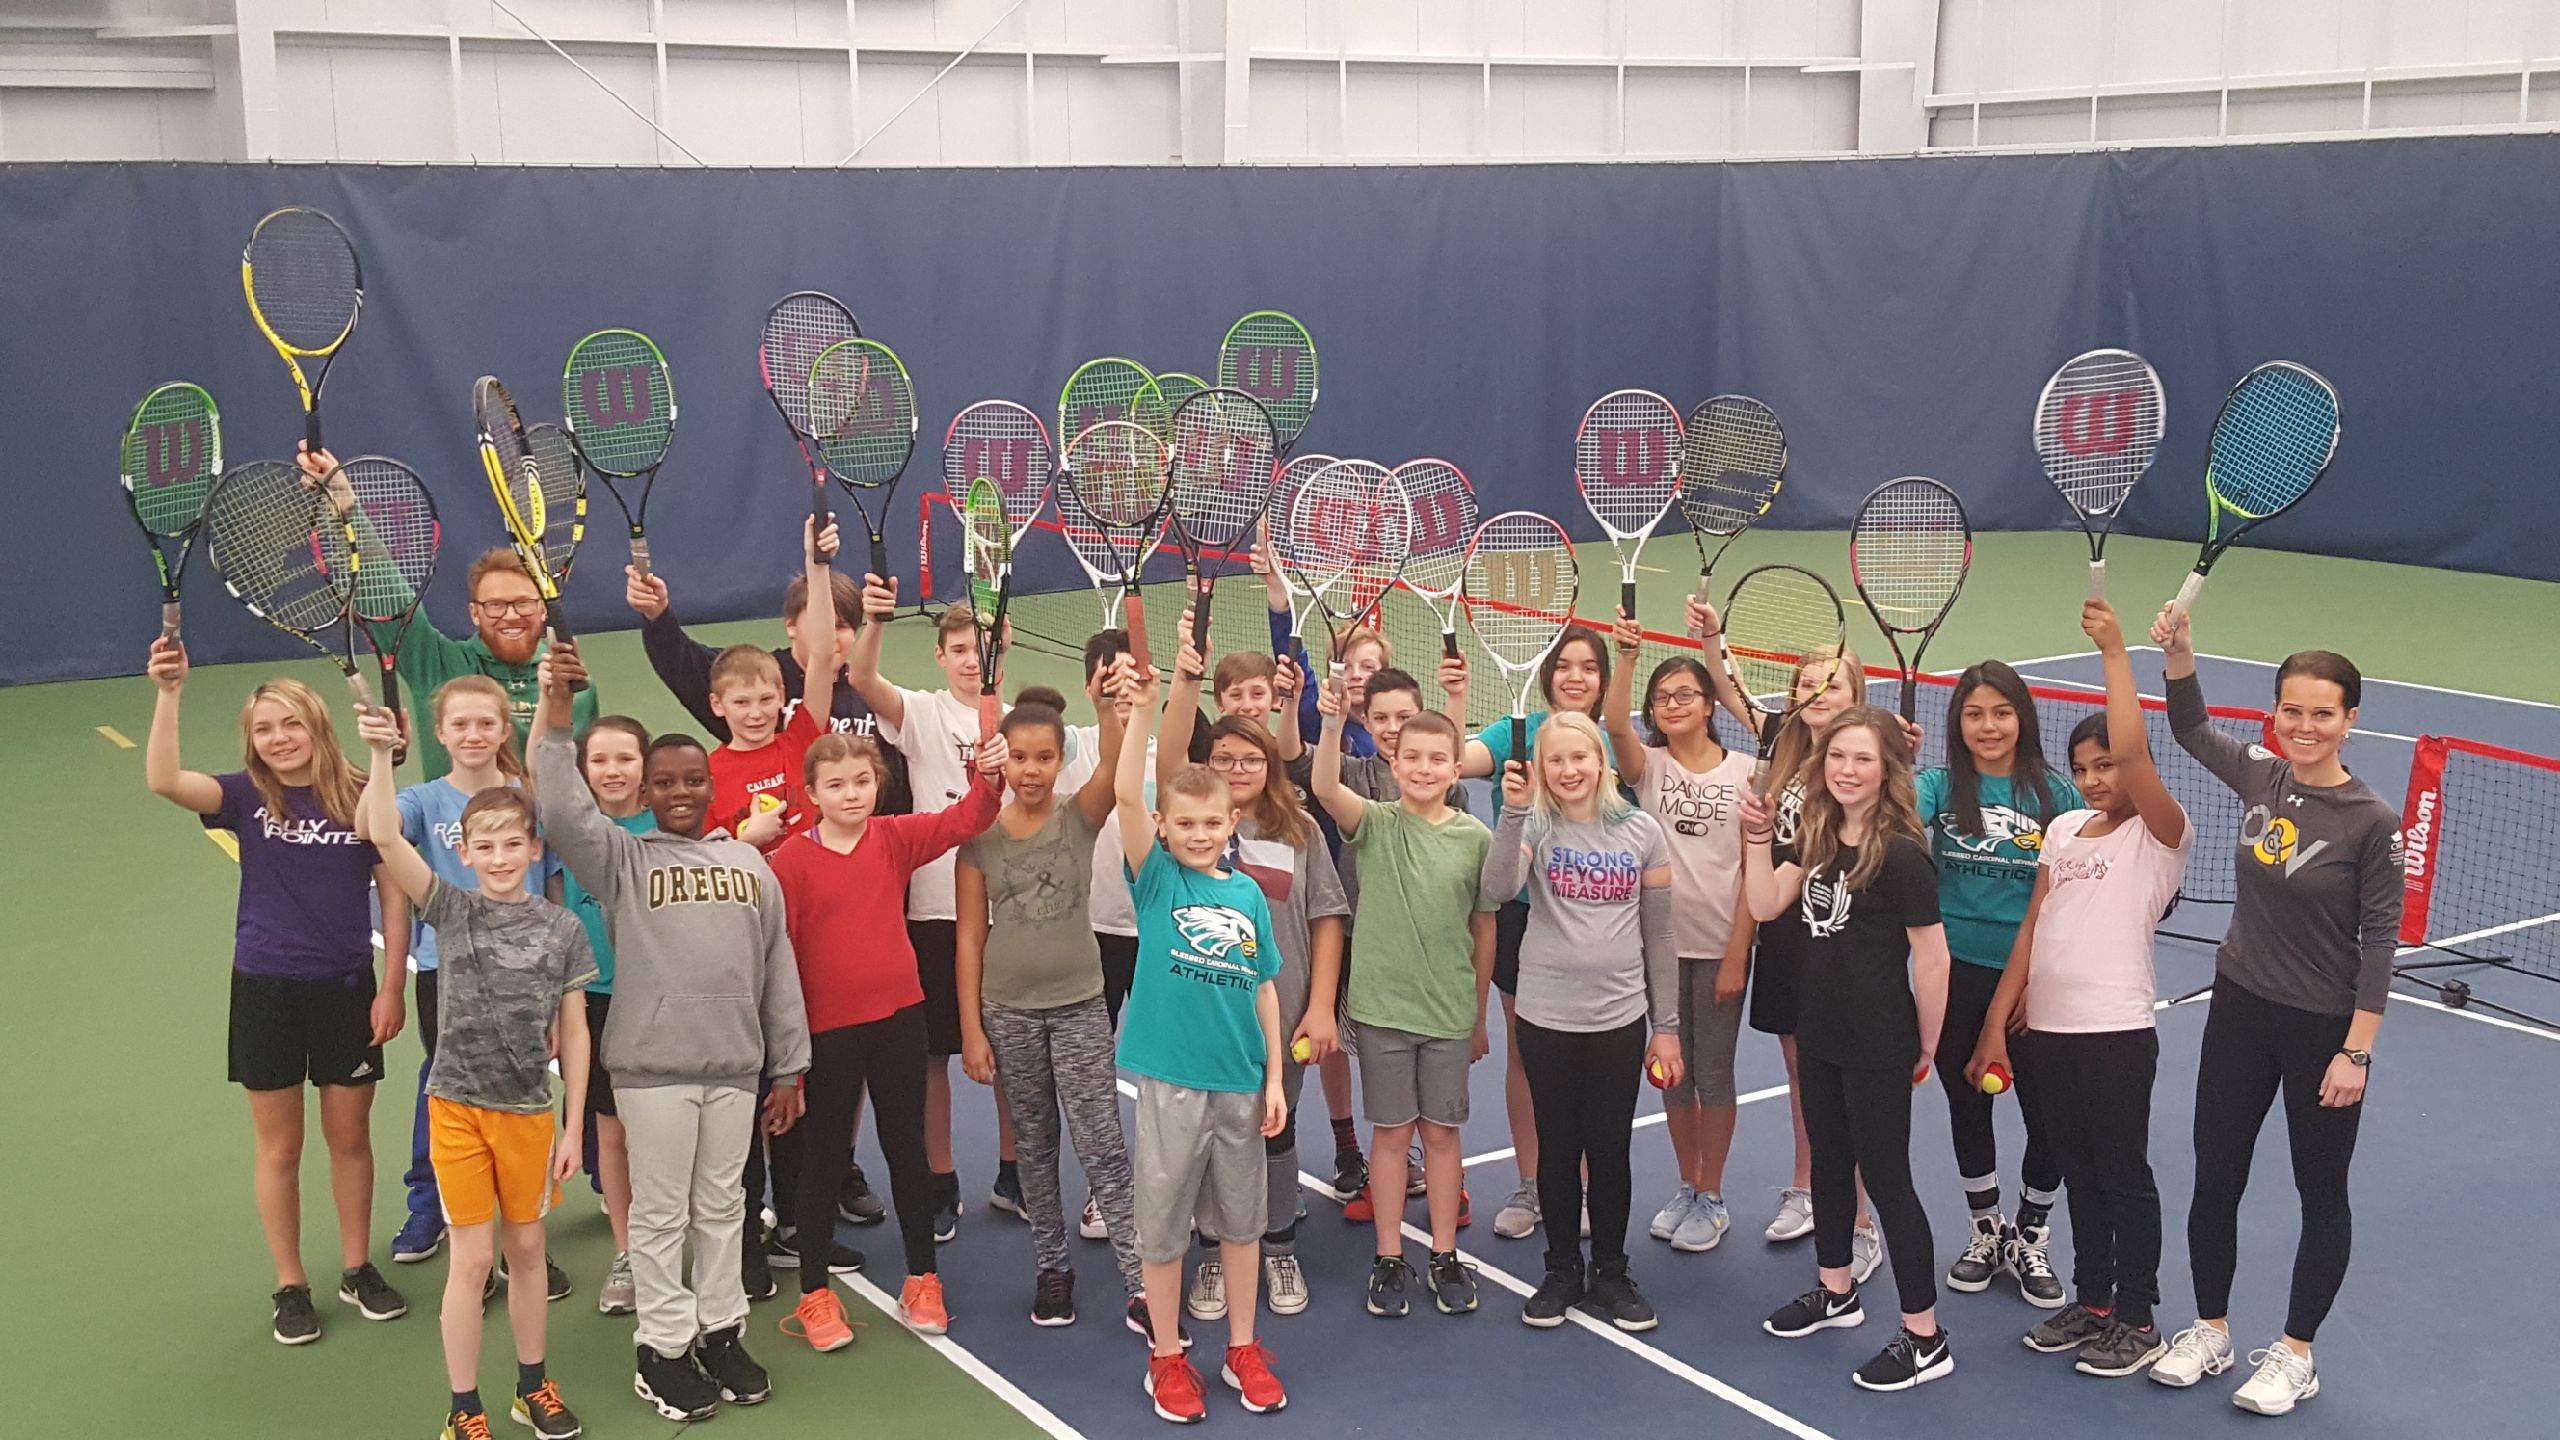 cwb schools tennis program goes from strength to strength